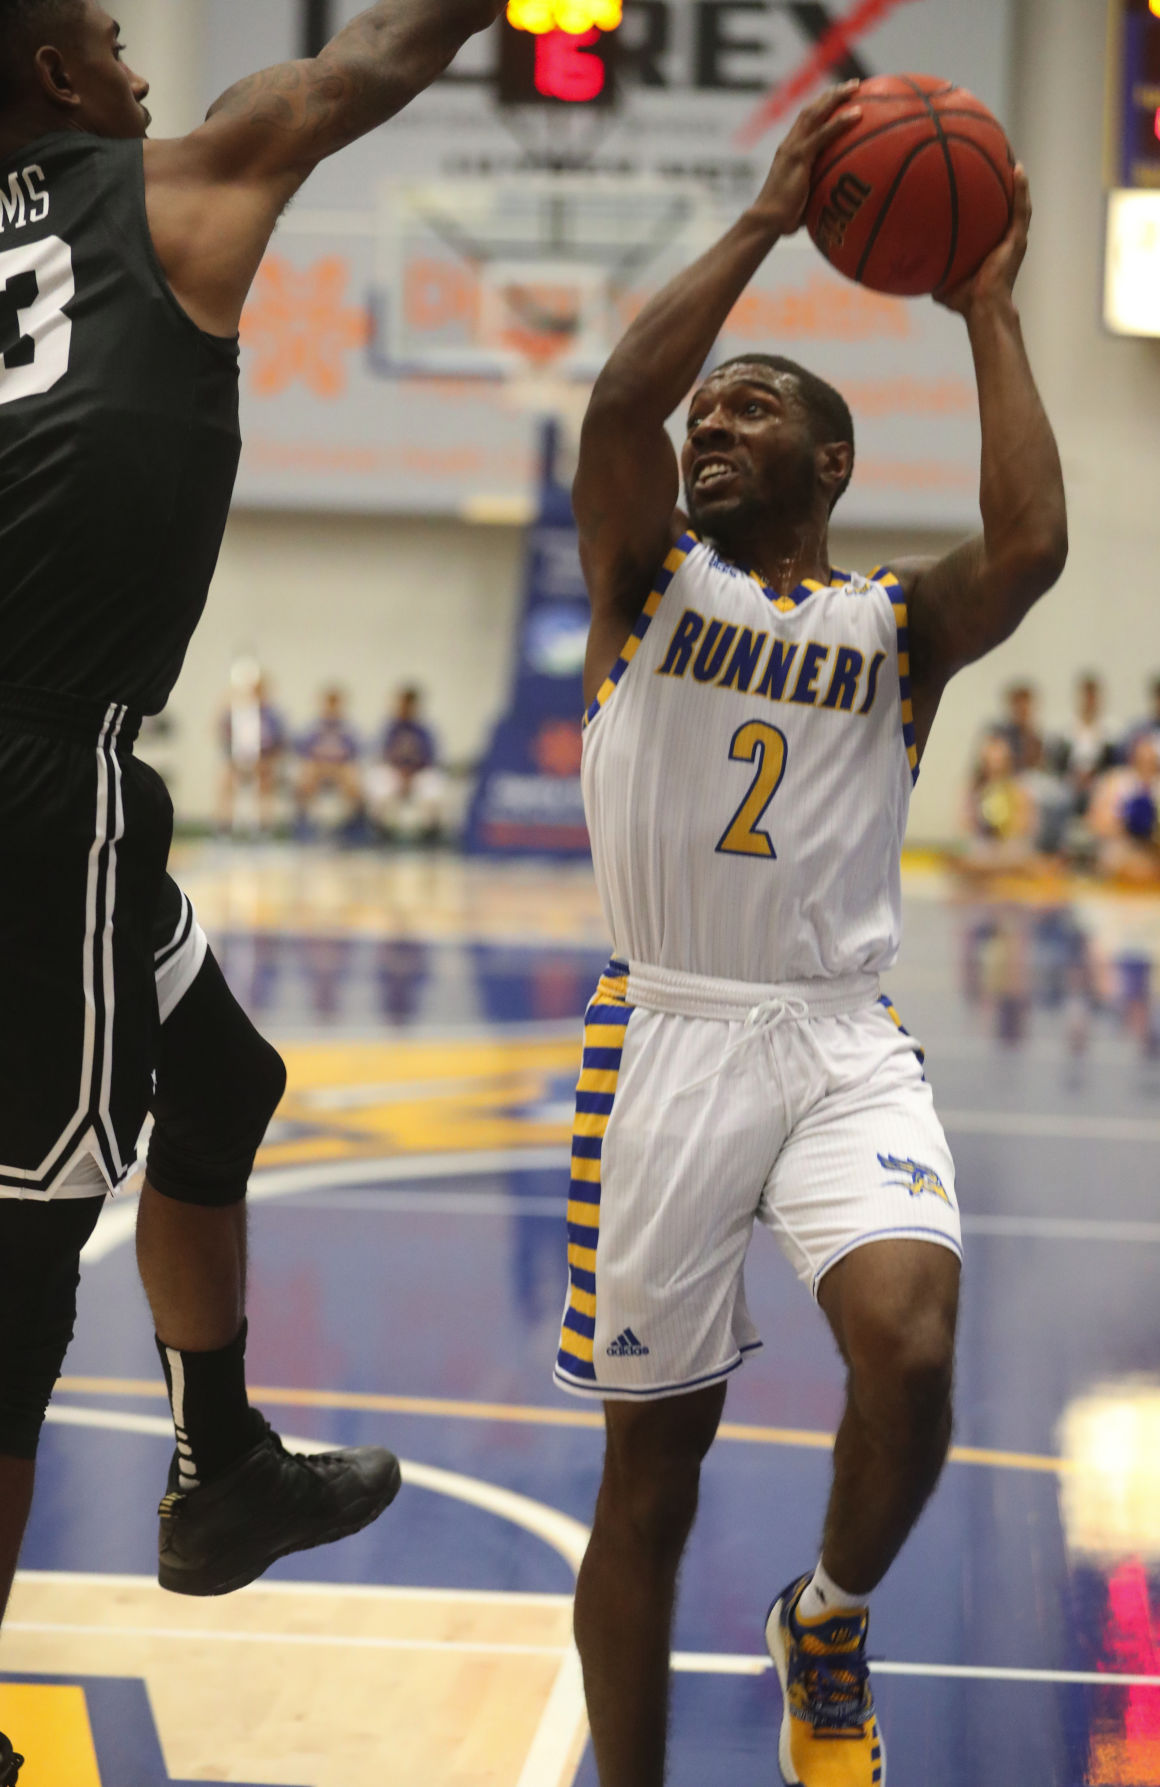 Rickey Holden's daughter is why he's at CSUB and what makes